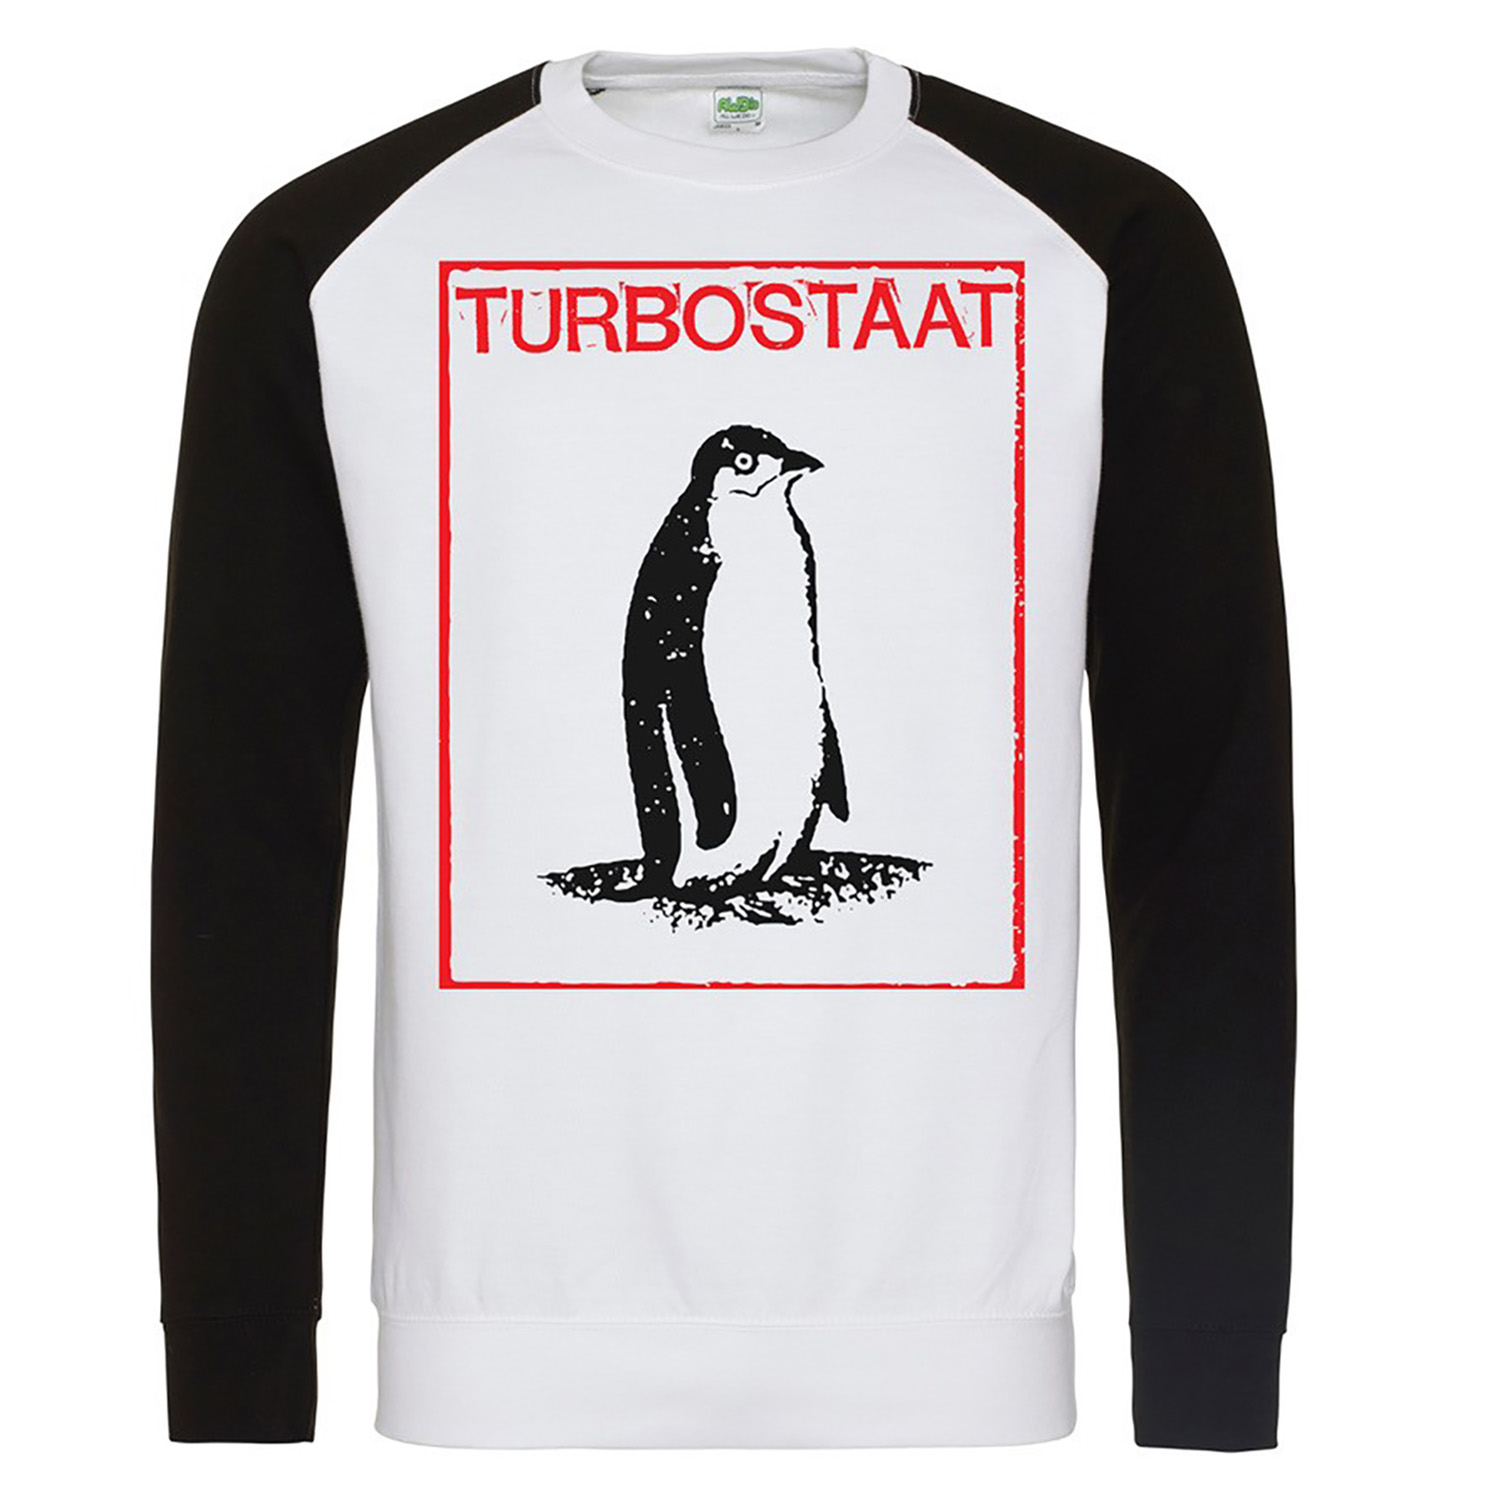 Turbostaat Pinguin Sweater schwarzweiss